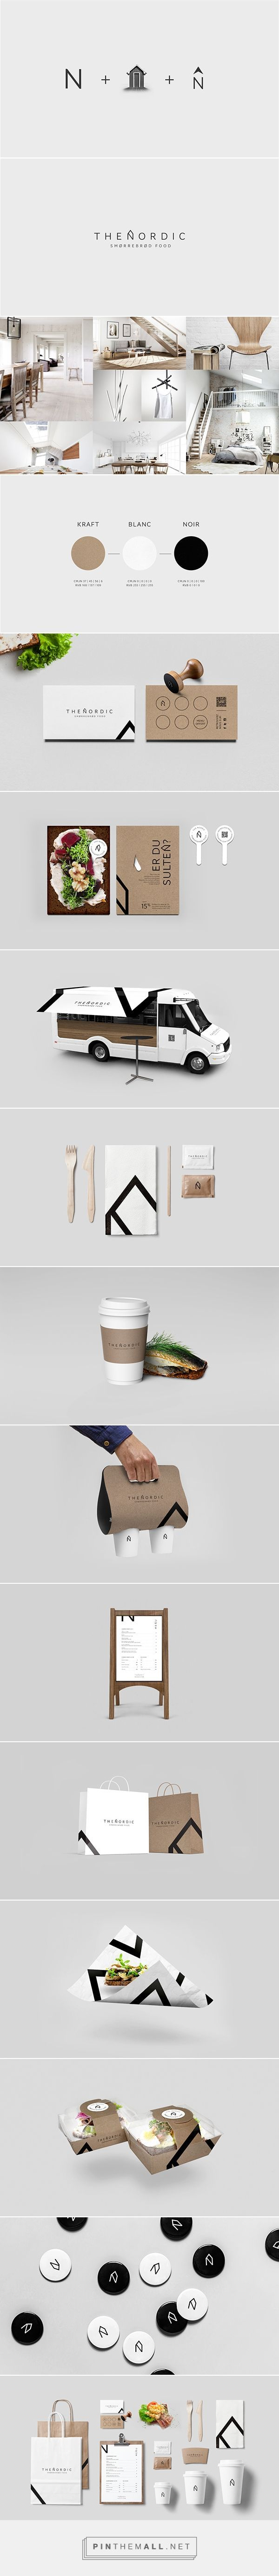 The Nordic | Food Truck on Behance by Alexandre Pietra curated by Packaging Diva PD. The Nordic is a visual packaging identity created for a scandinavian Food Truck.: